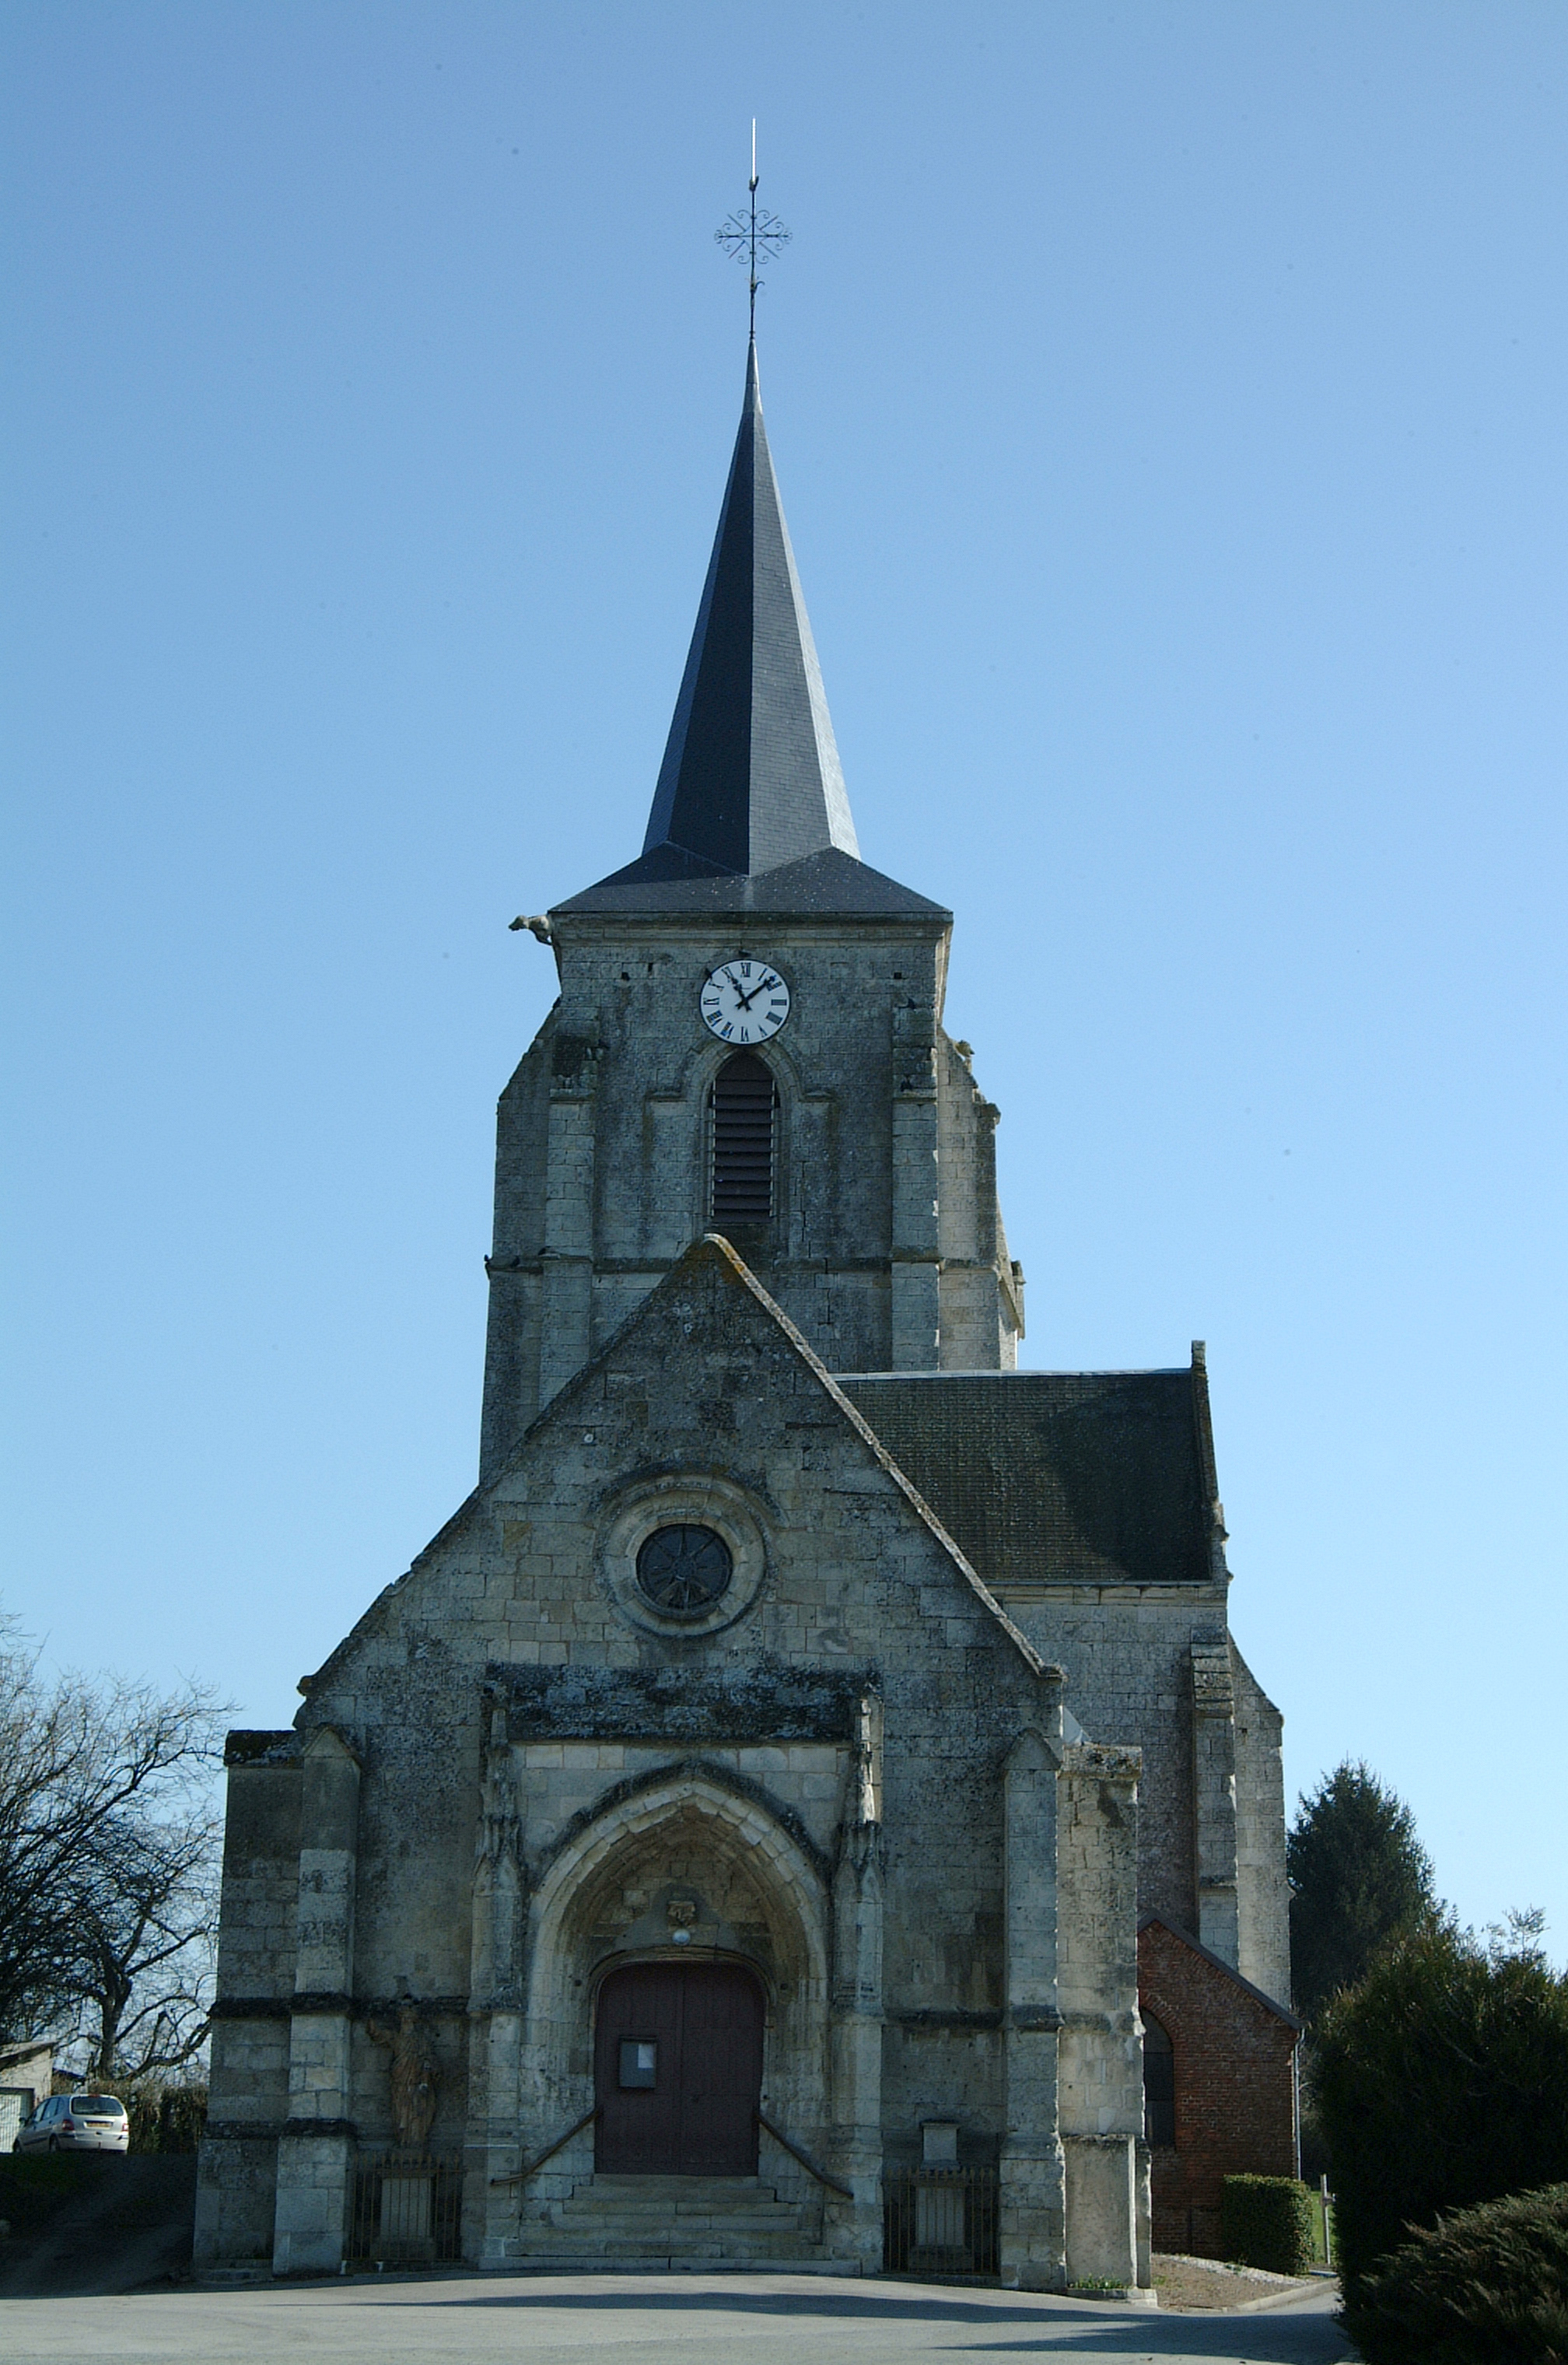 File:L'Eglise de Cempuis.JPG - Wikimedia Commons